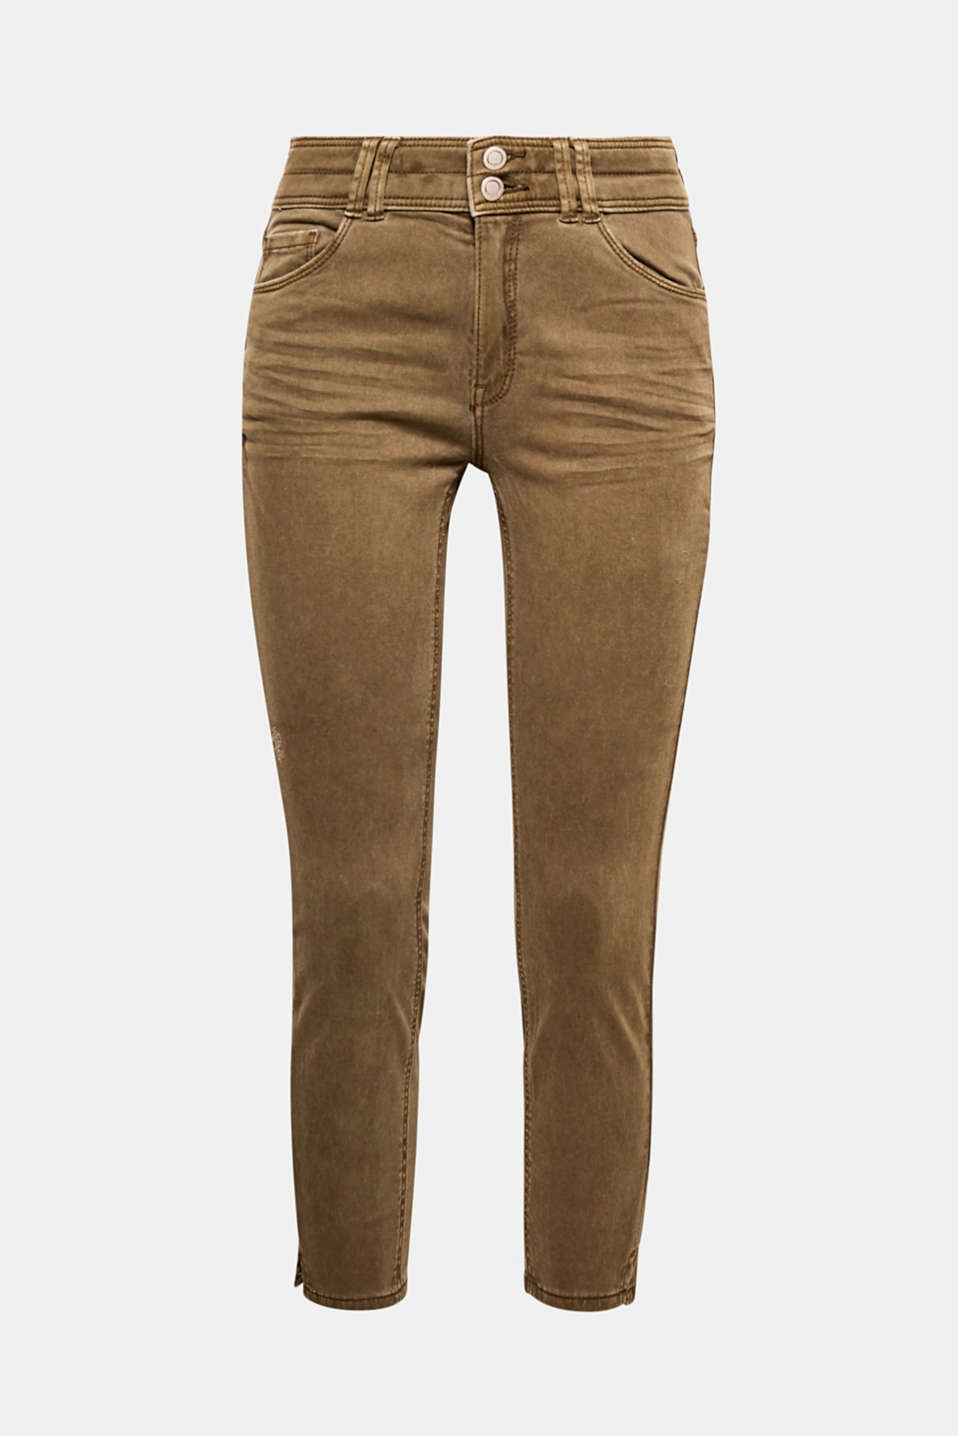 These stretchy cotton trousers in a trendy ankle length are a fantastic basic for any look.